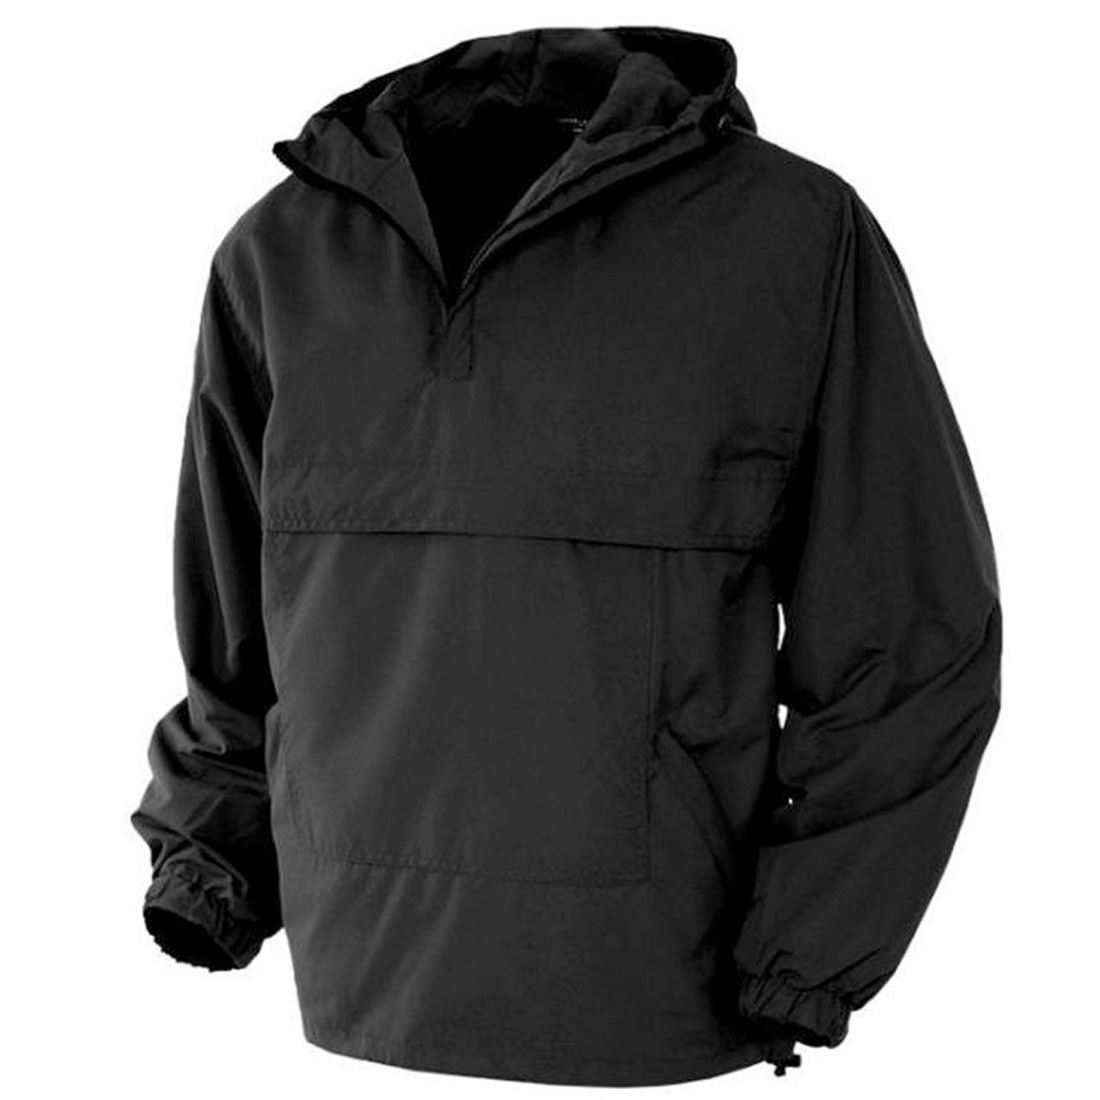 MIL-TEC Softshell-Giacca Light weight Uomo Giacca Giacca di transizione 3 colori s-3xl